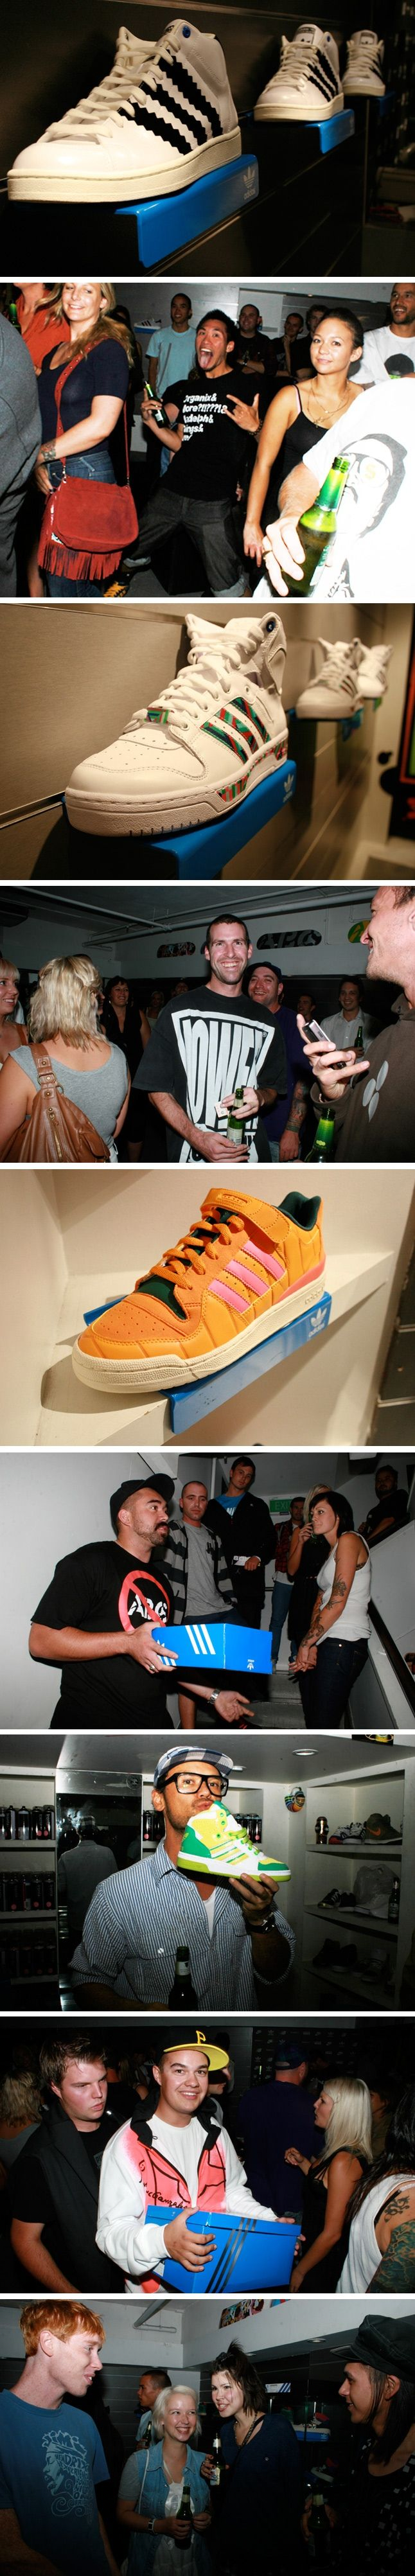 Loaded Adidas Launch Pics 1